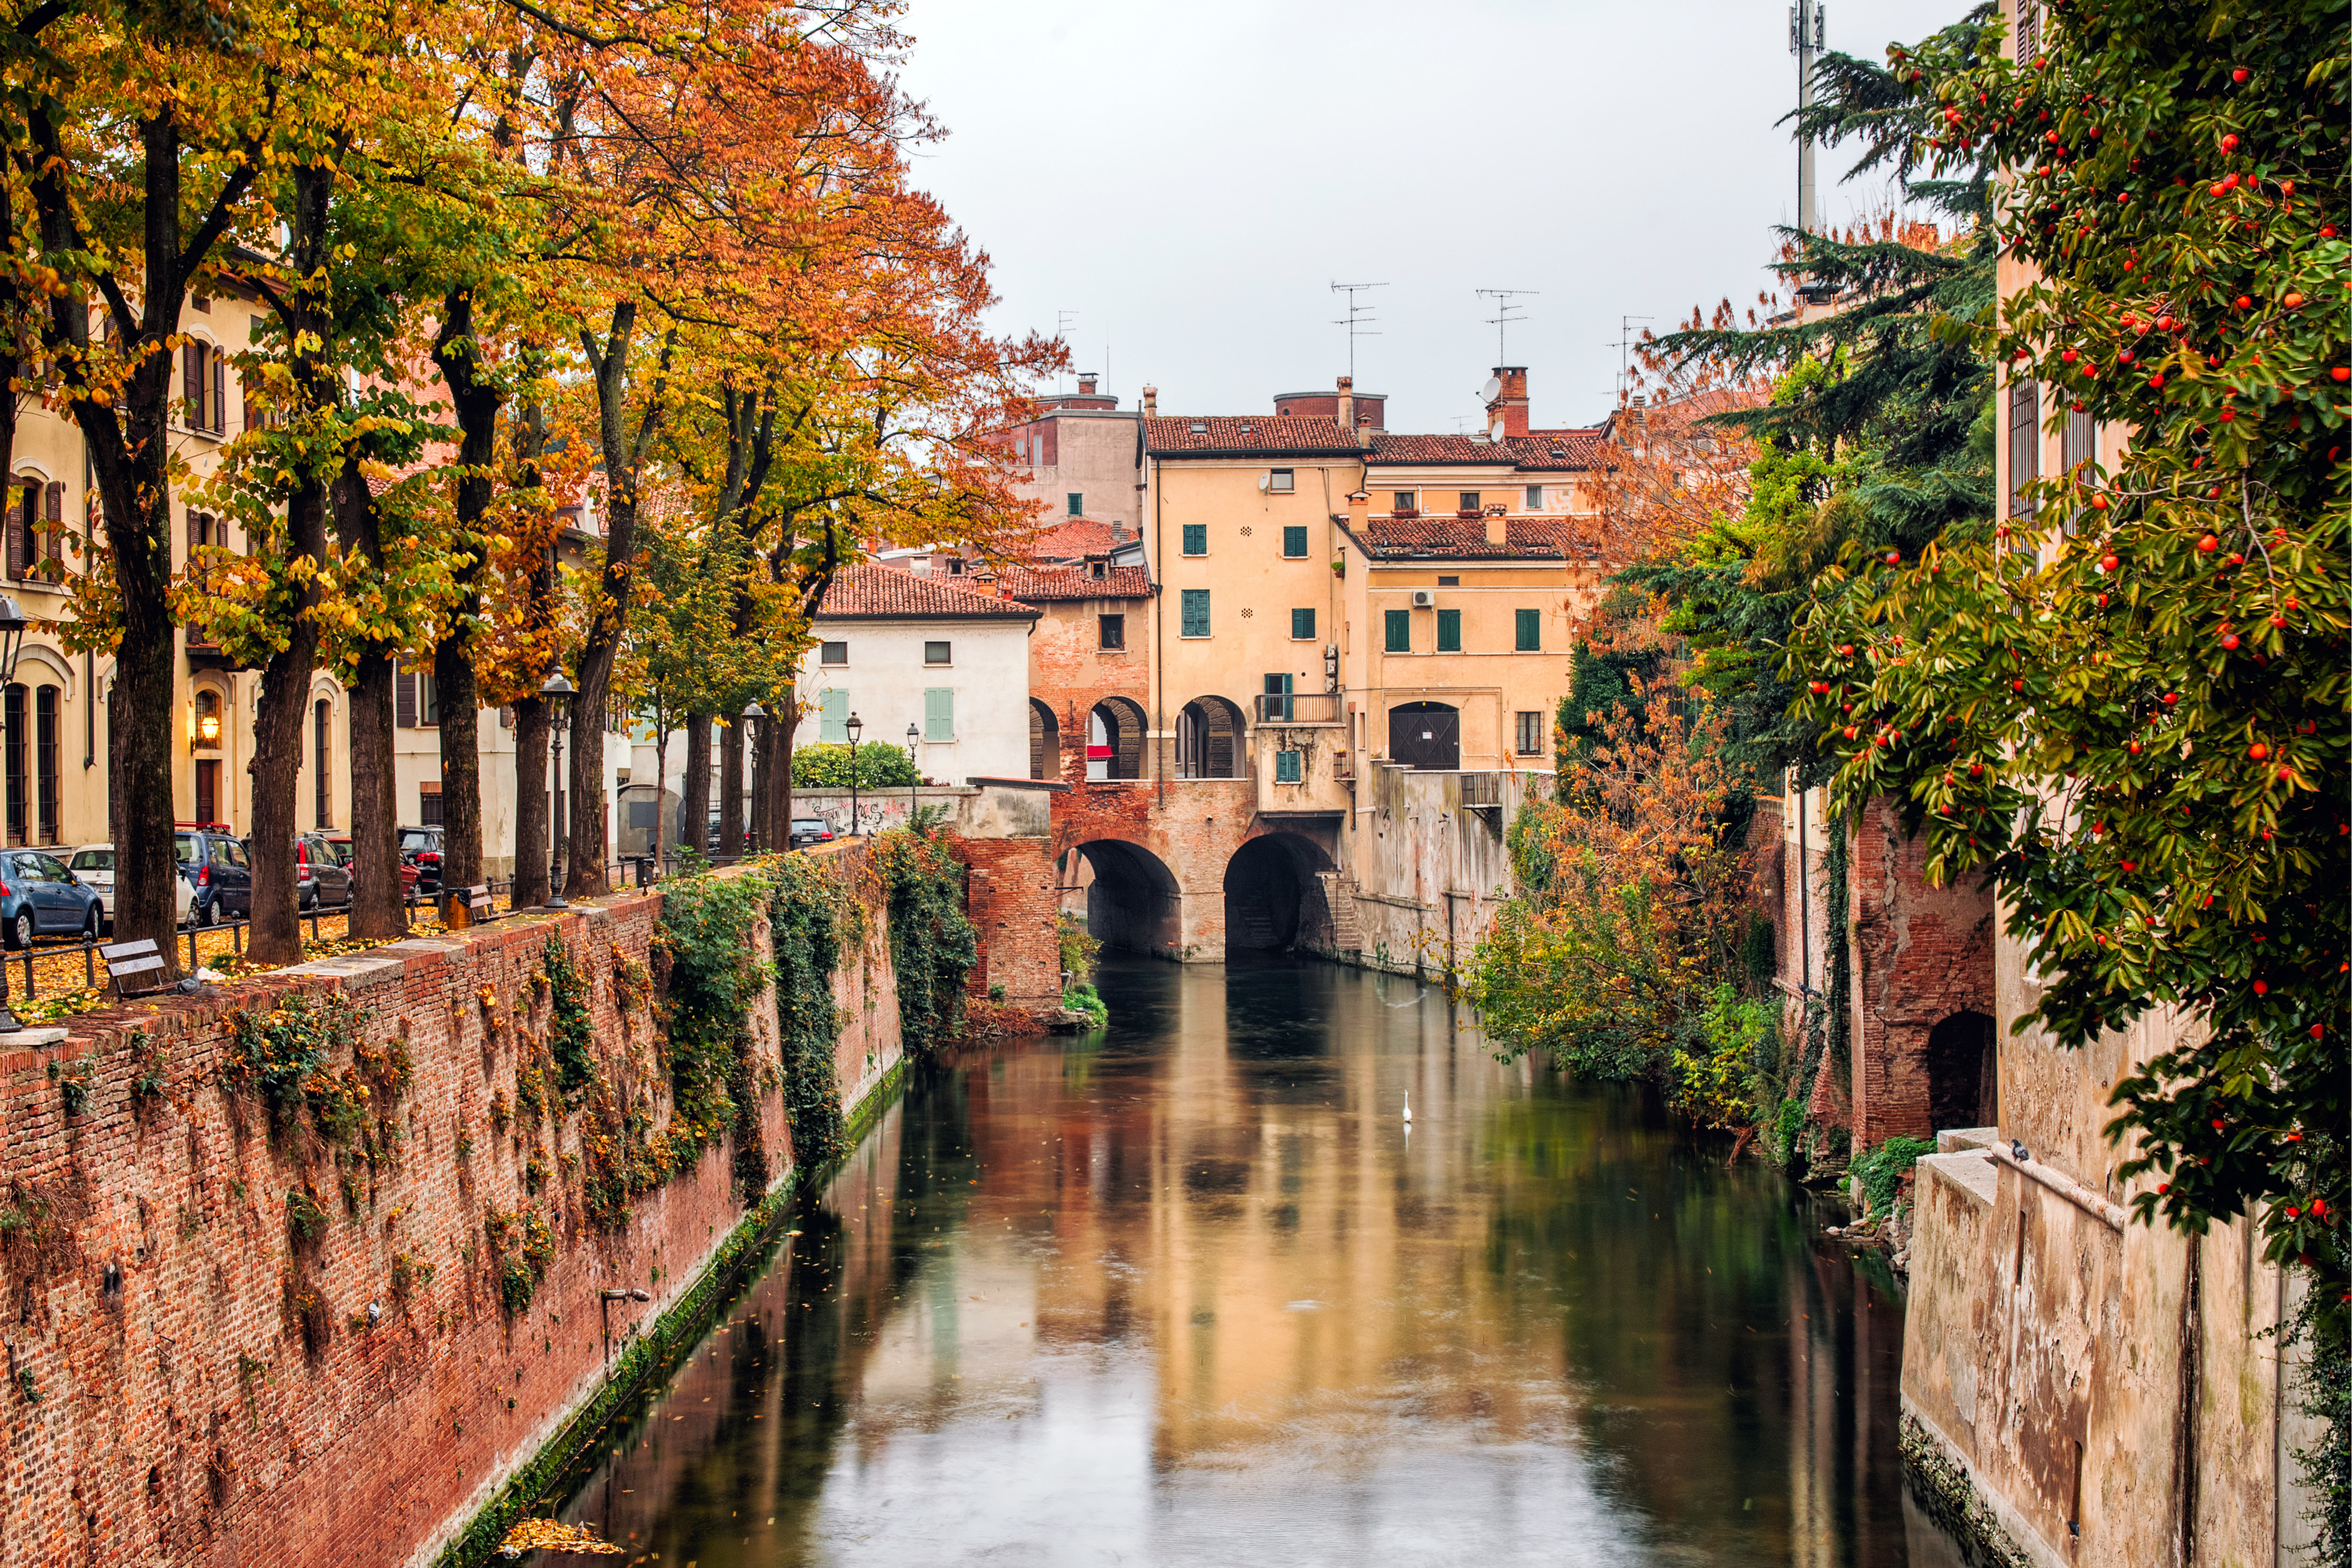 An Autumn atmosphere on the river Rio, Mantua, Italy